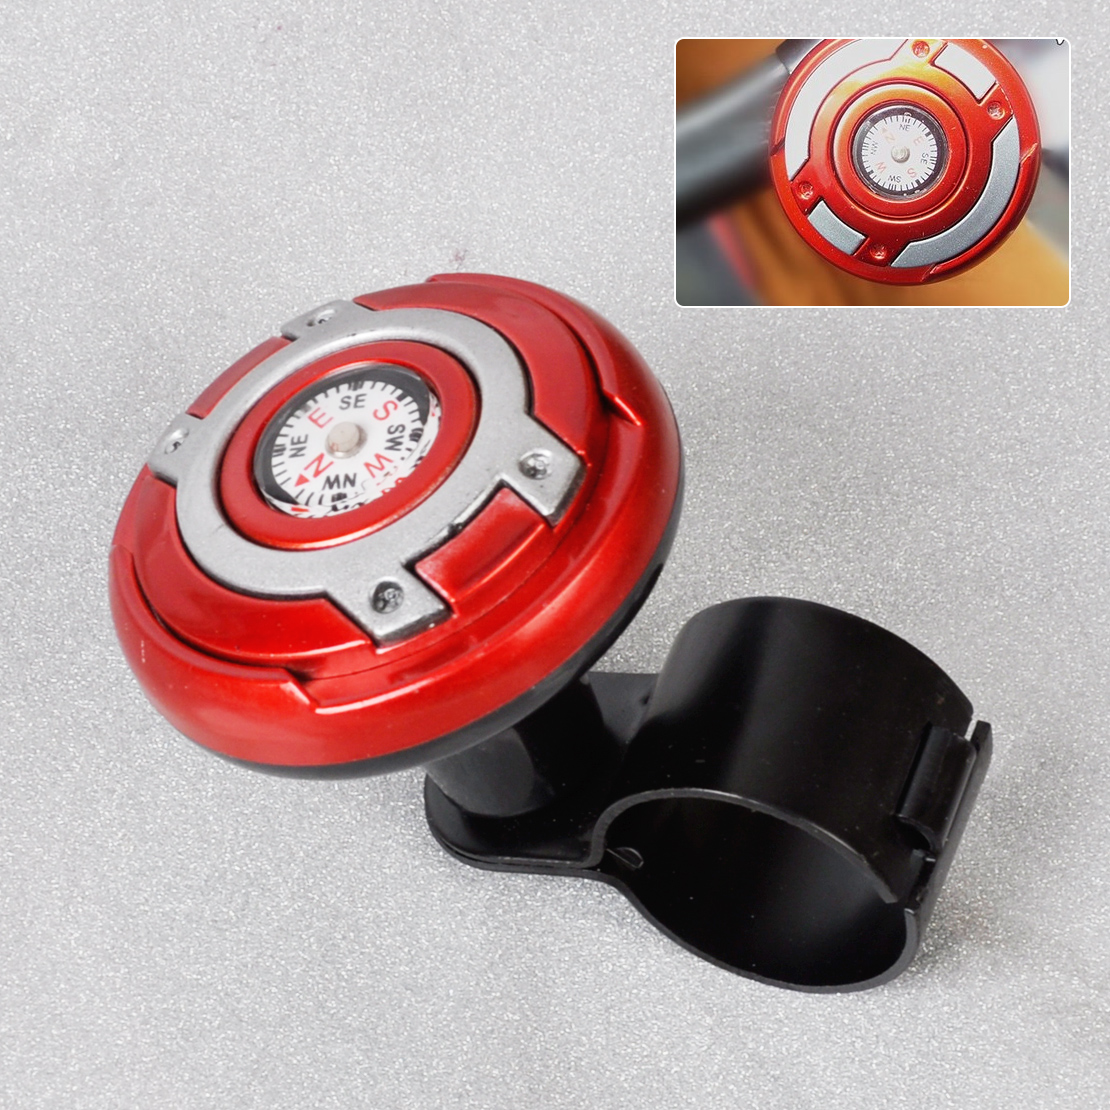 DWCX Universal Car Wheel Steering Power Handle Grip Knob Power Ball & Navigation Compass High Flexibility Navigator